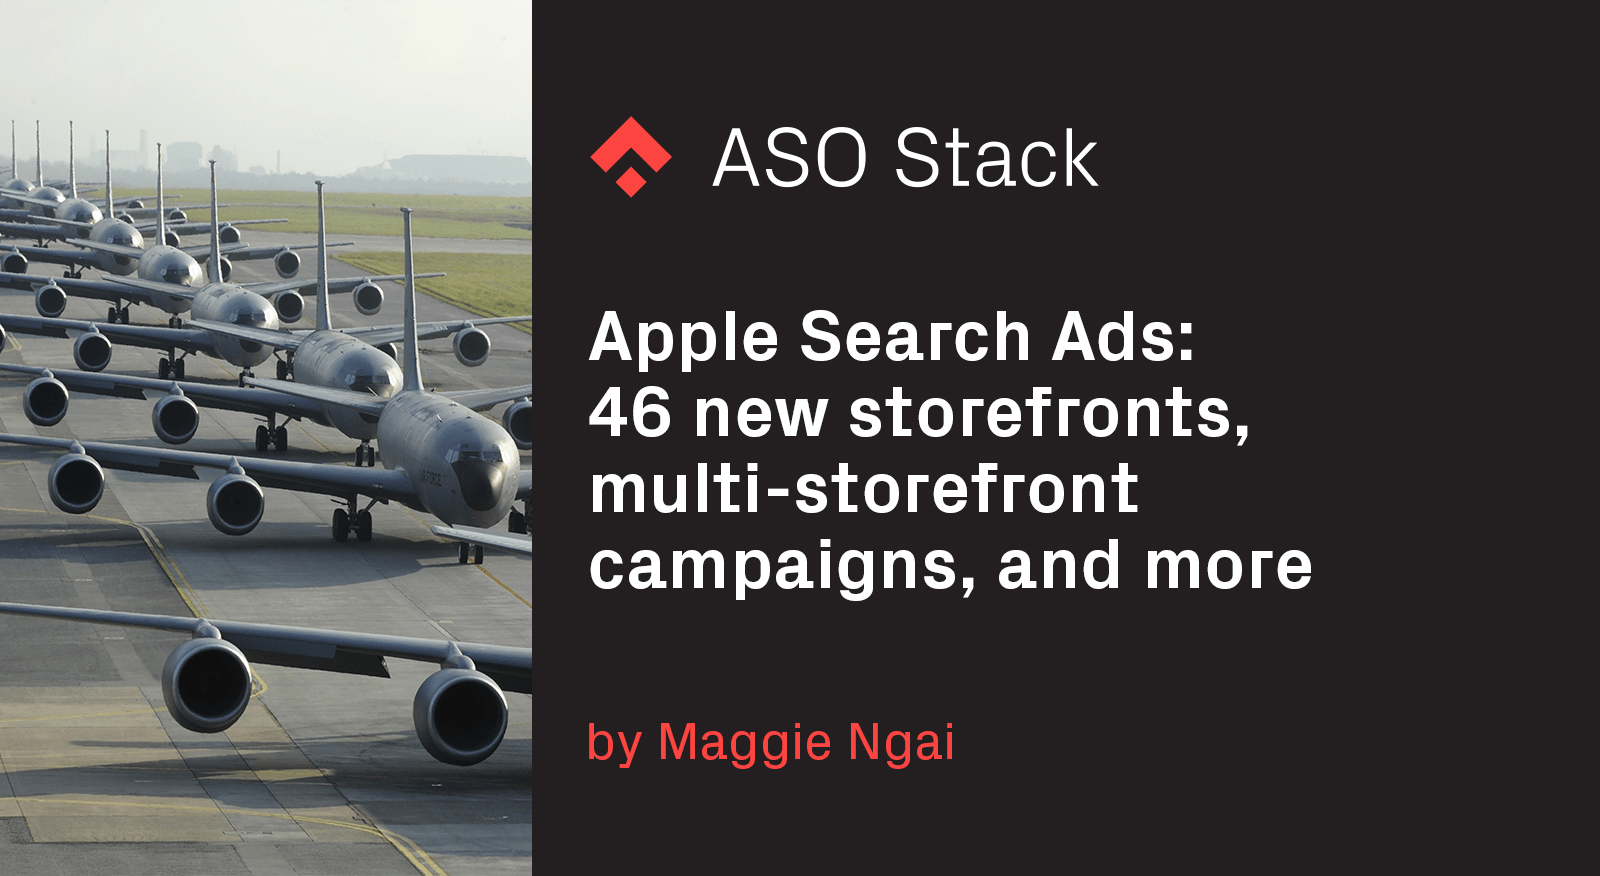 Apple Search Ads- 46 new storefronts, multi-storefront campaigns, and more